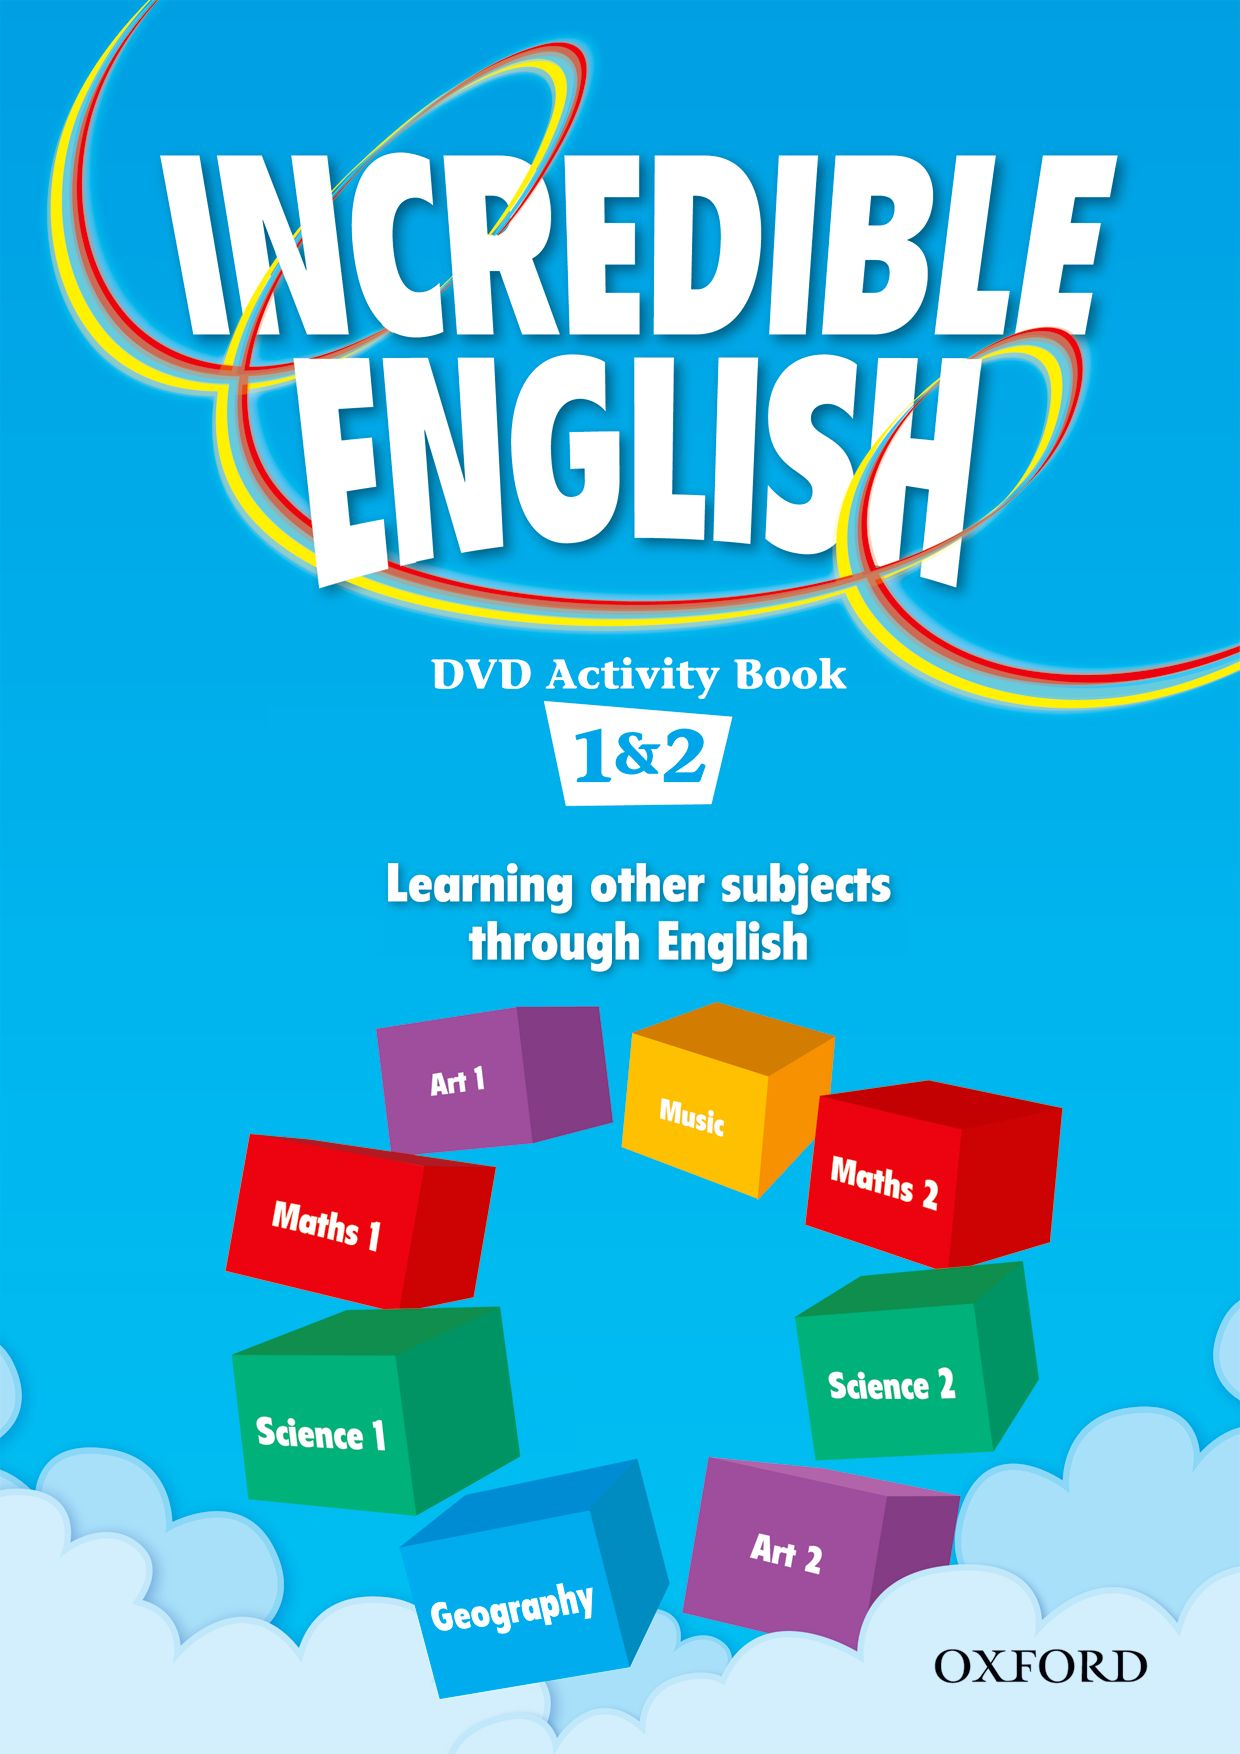 INCREDIBLE ENGLISHLISH 1&2 DVD AB incredible englishlish 1 cl cd 2